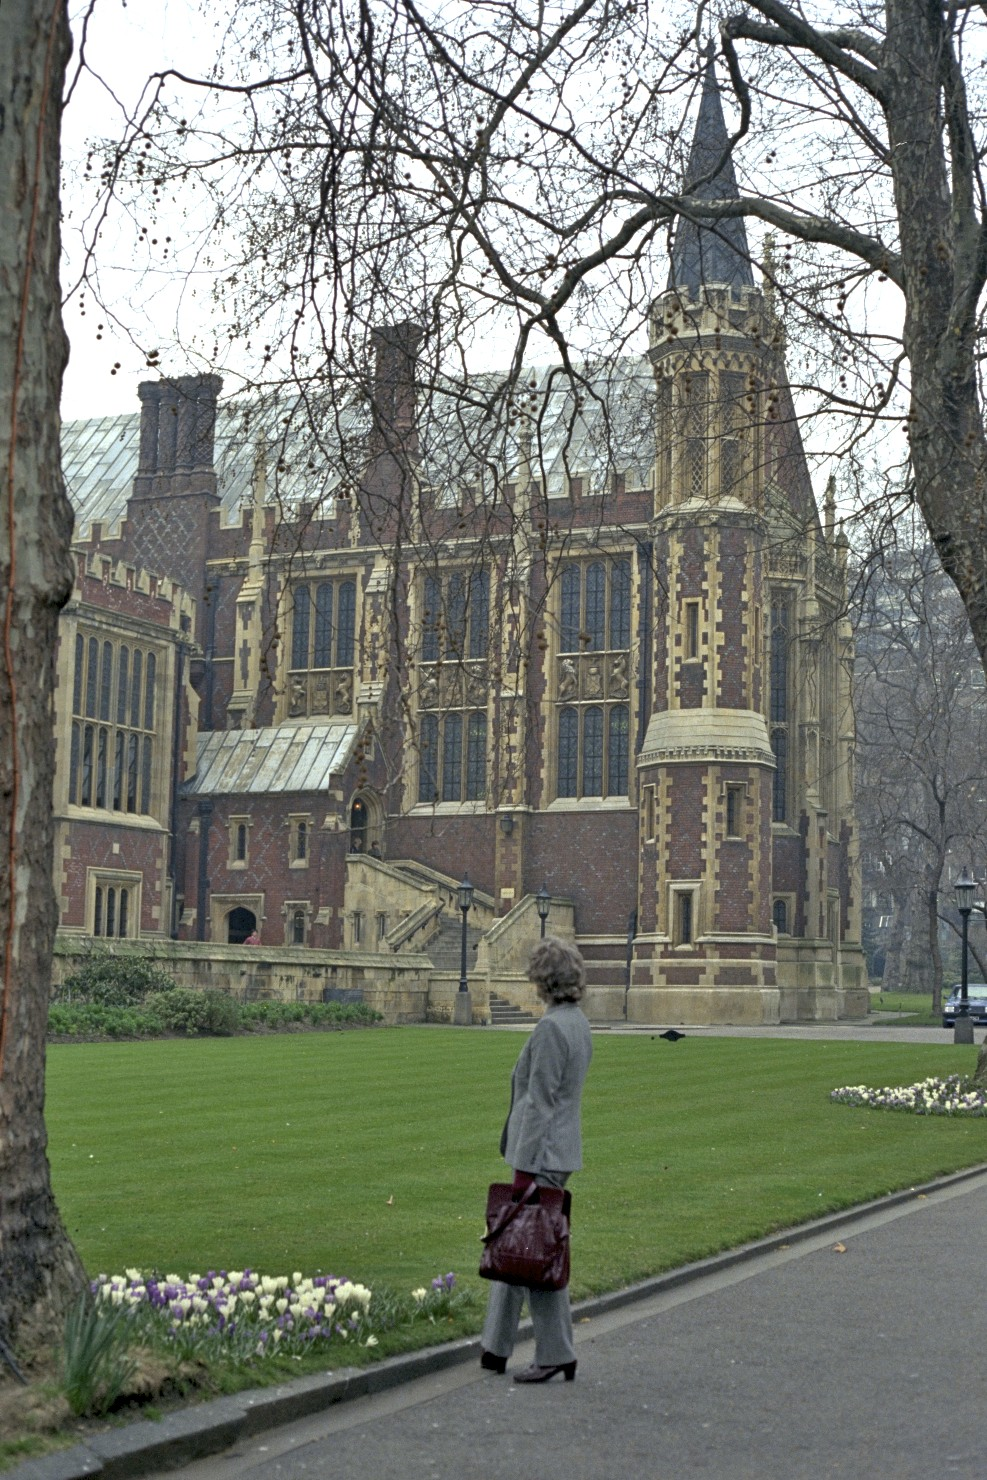 Lincoln's Inn, London